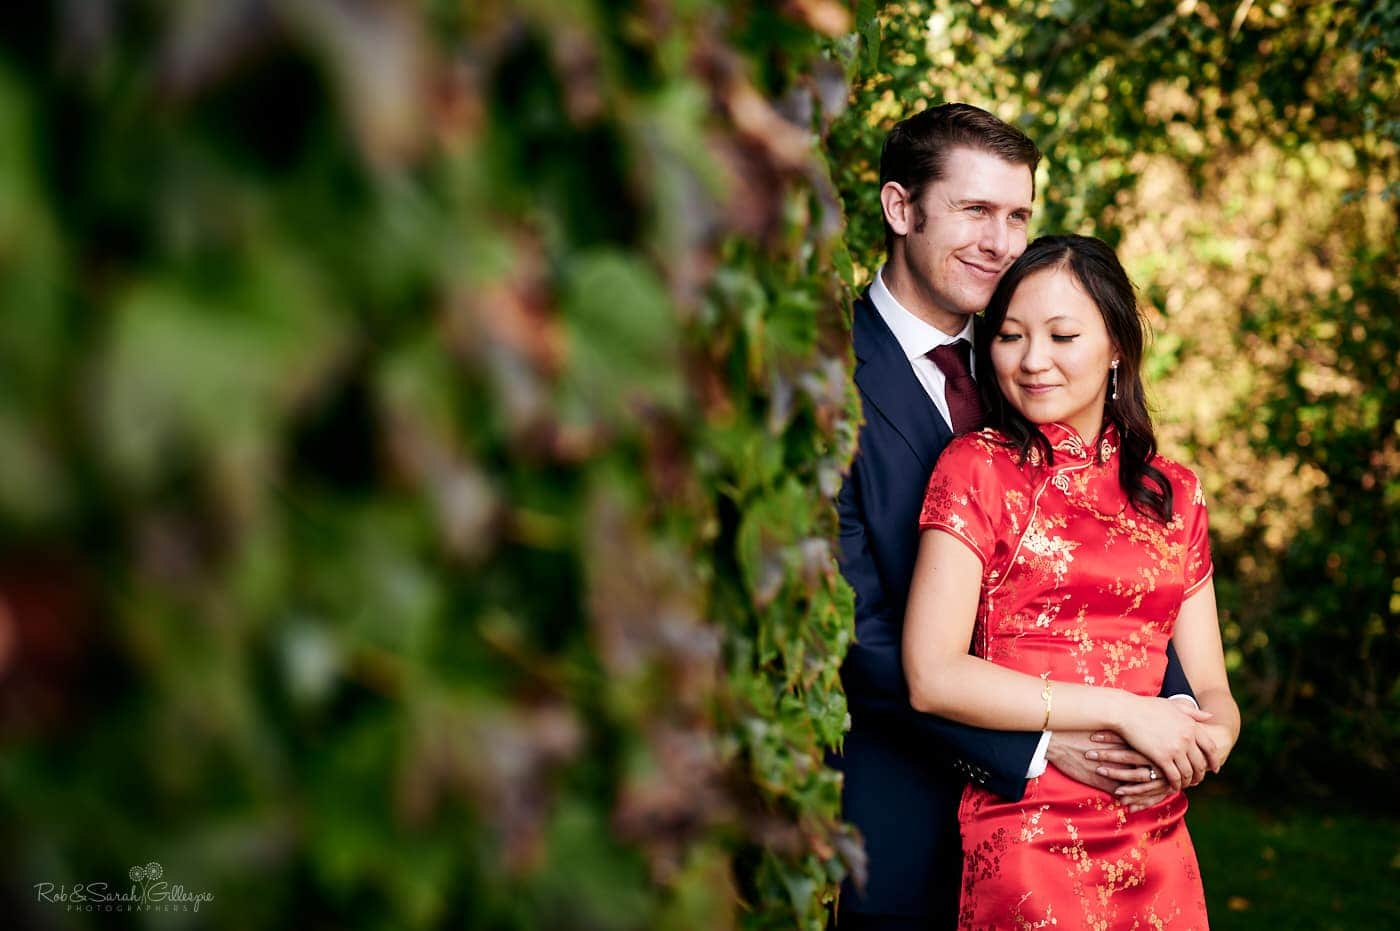 Bride in red Chinese wedding dress cuddled by groom at Mallory Court wedding